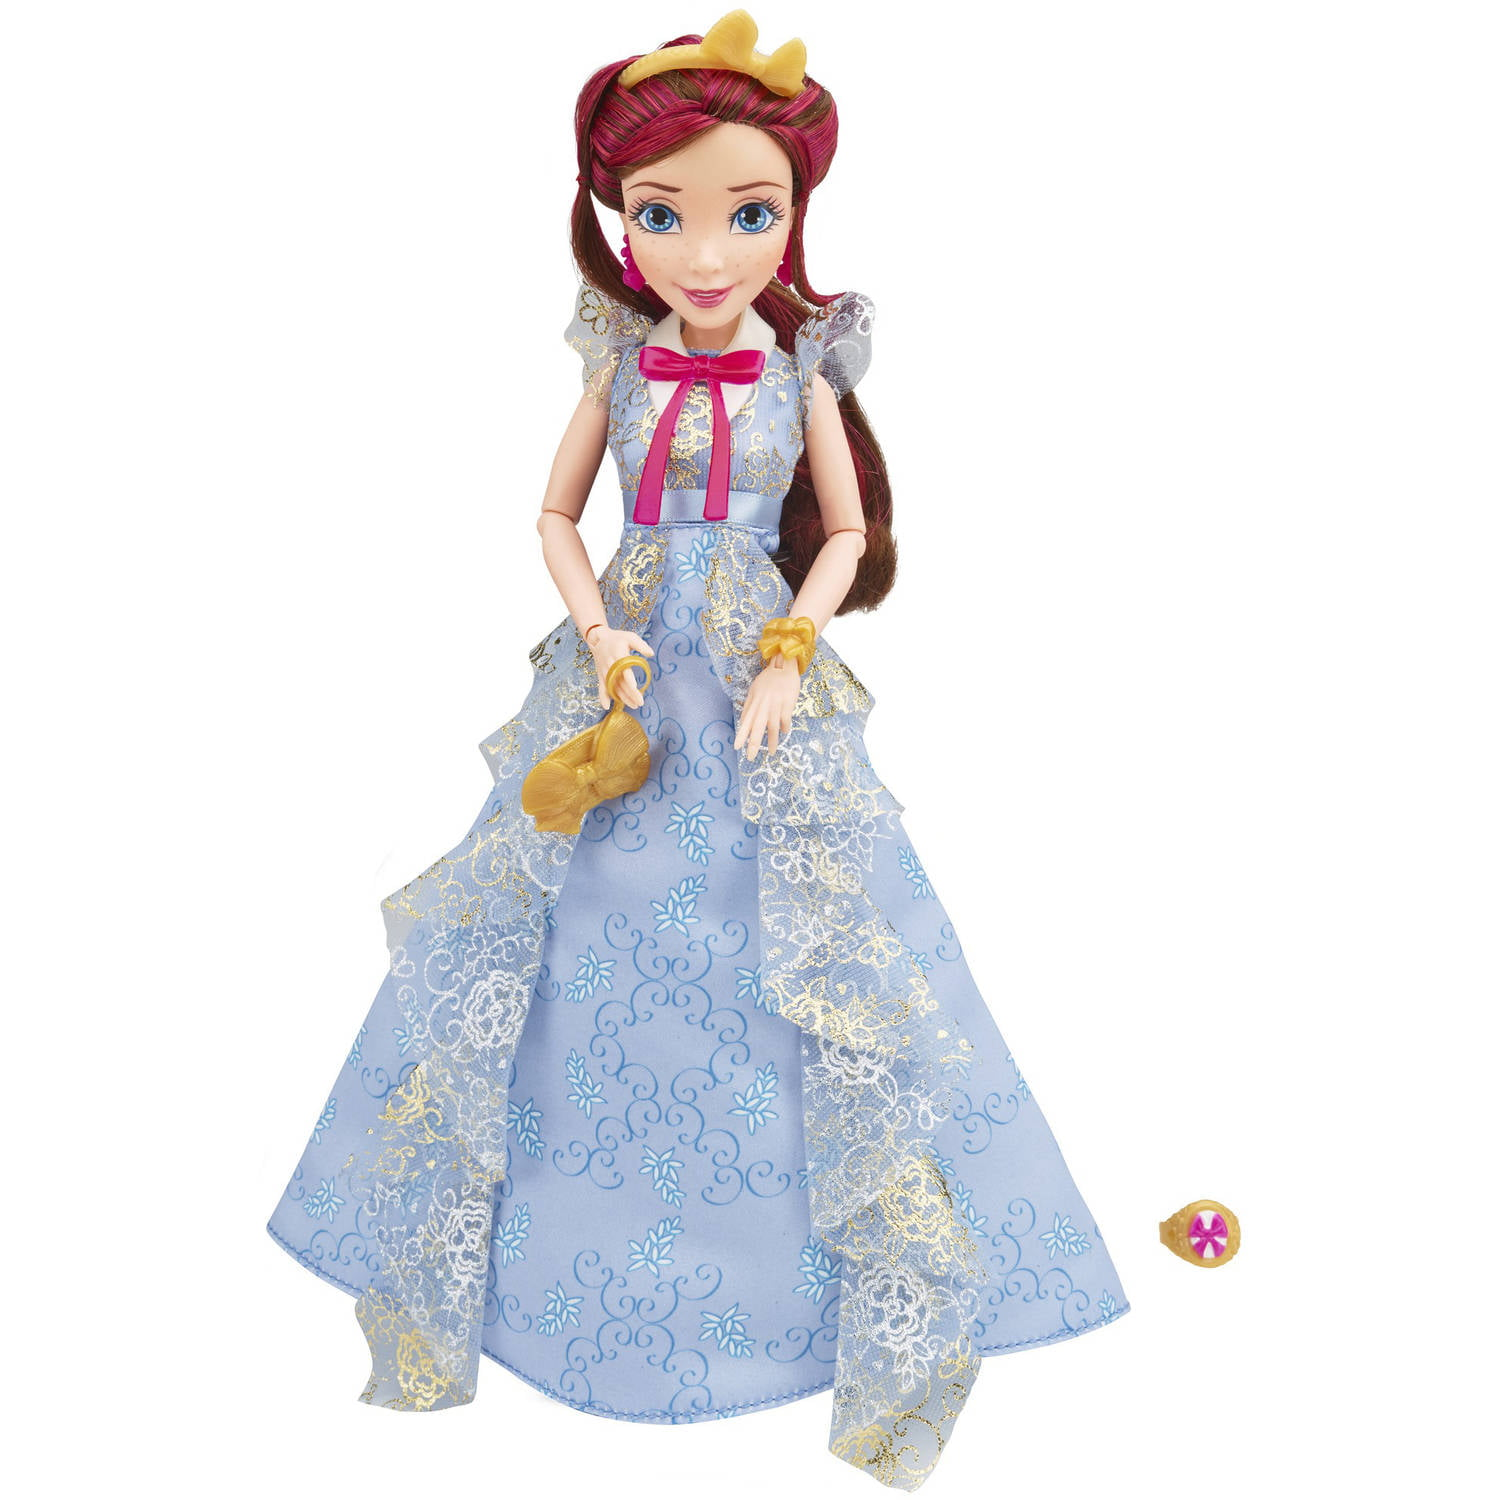 Disney Descendants Coronation Jane Auradon Prep Doll by Hasbro